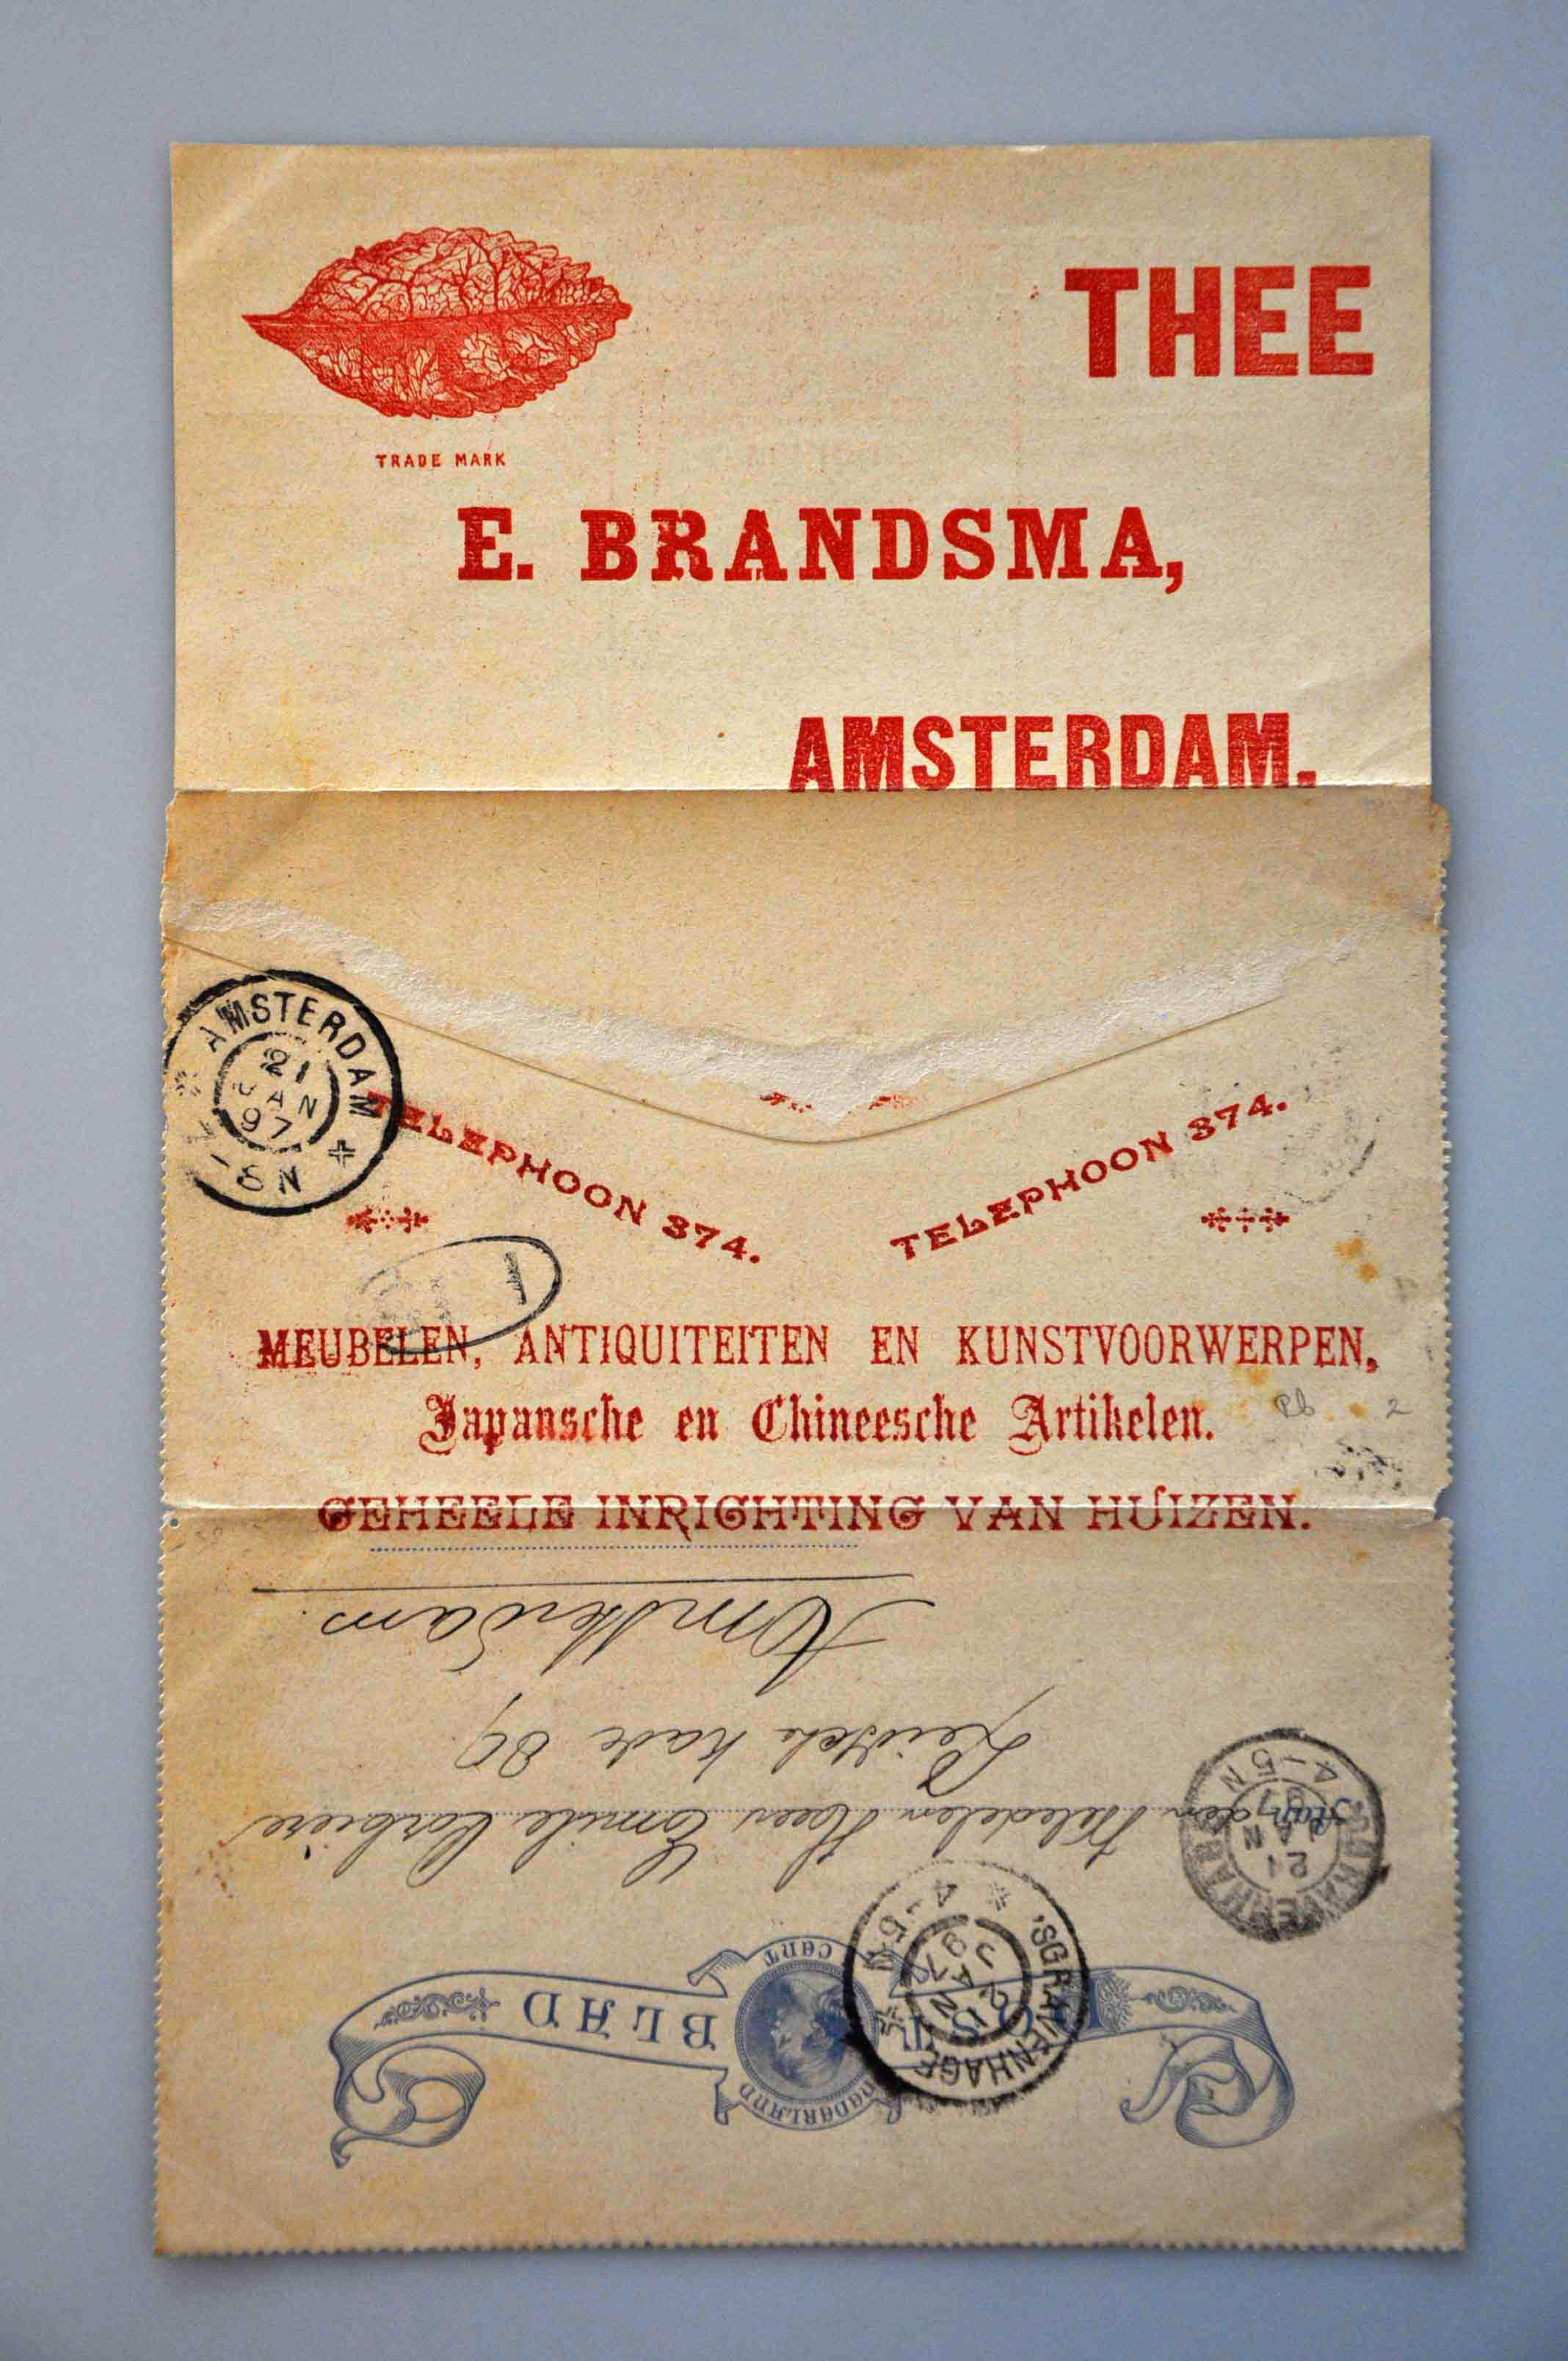 Lot 1833 - Netherlands and former colonies Netherlands Postal Stationery -  Corinphila Veilingen Auction 245-246 Day 3 - Netherlands and former colonies - Single lots, Collections and lots, Boxes and literature